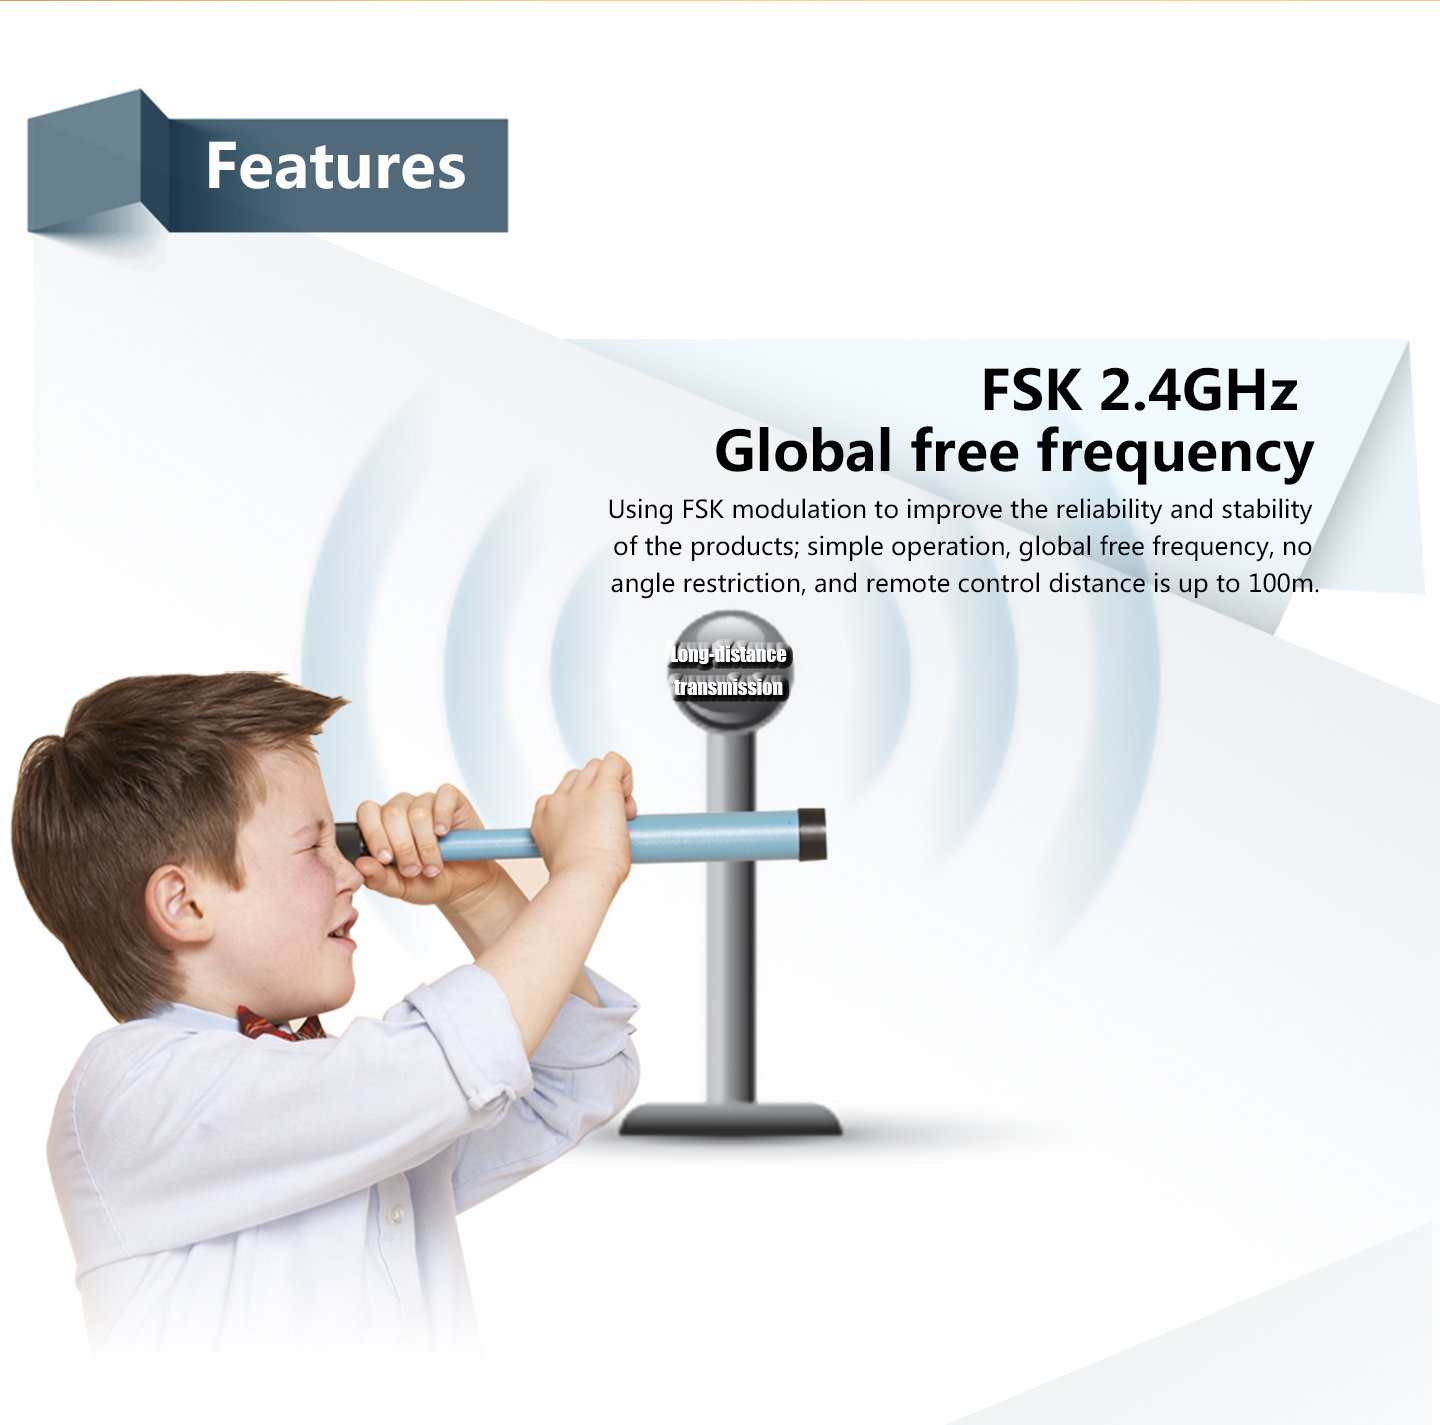 FSK 2.4GHz Global free frequency